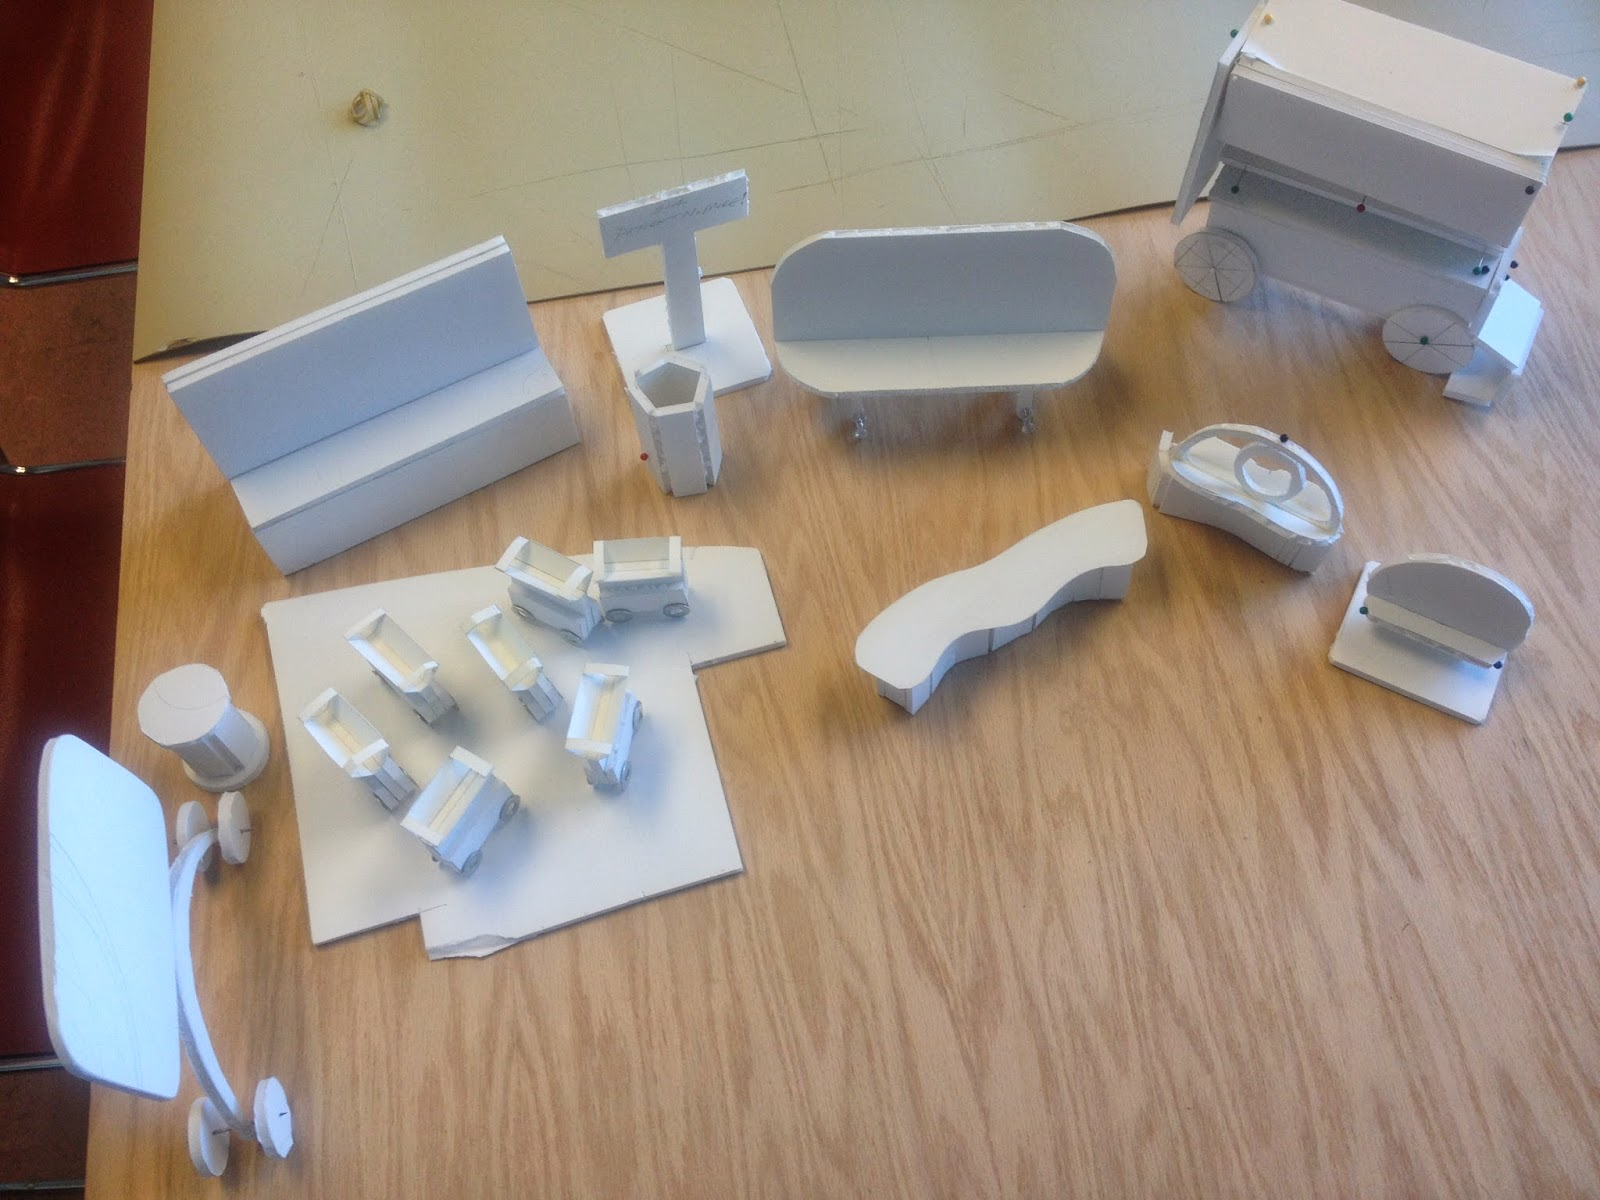 A top view image of white foam core model mockups grouped together on a wooden table.